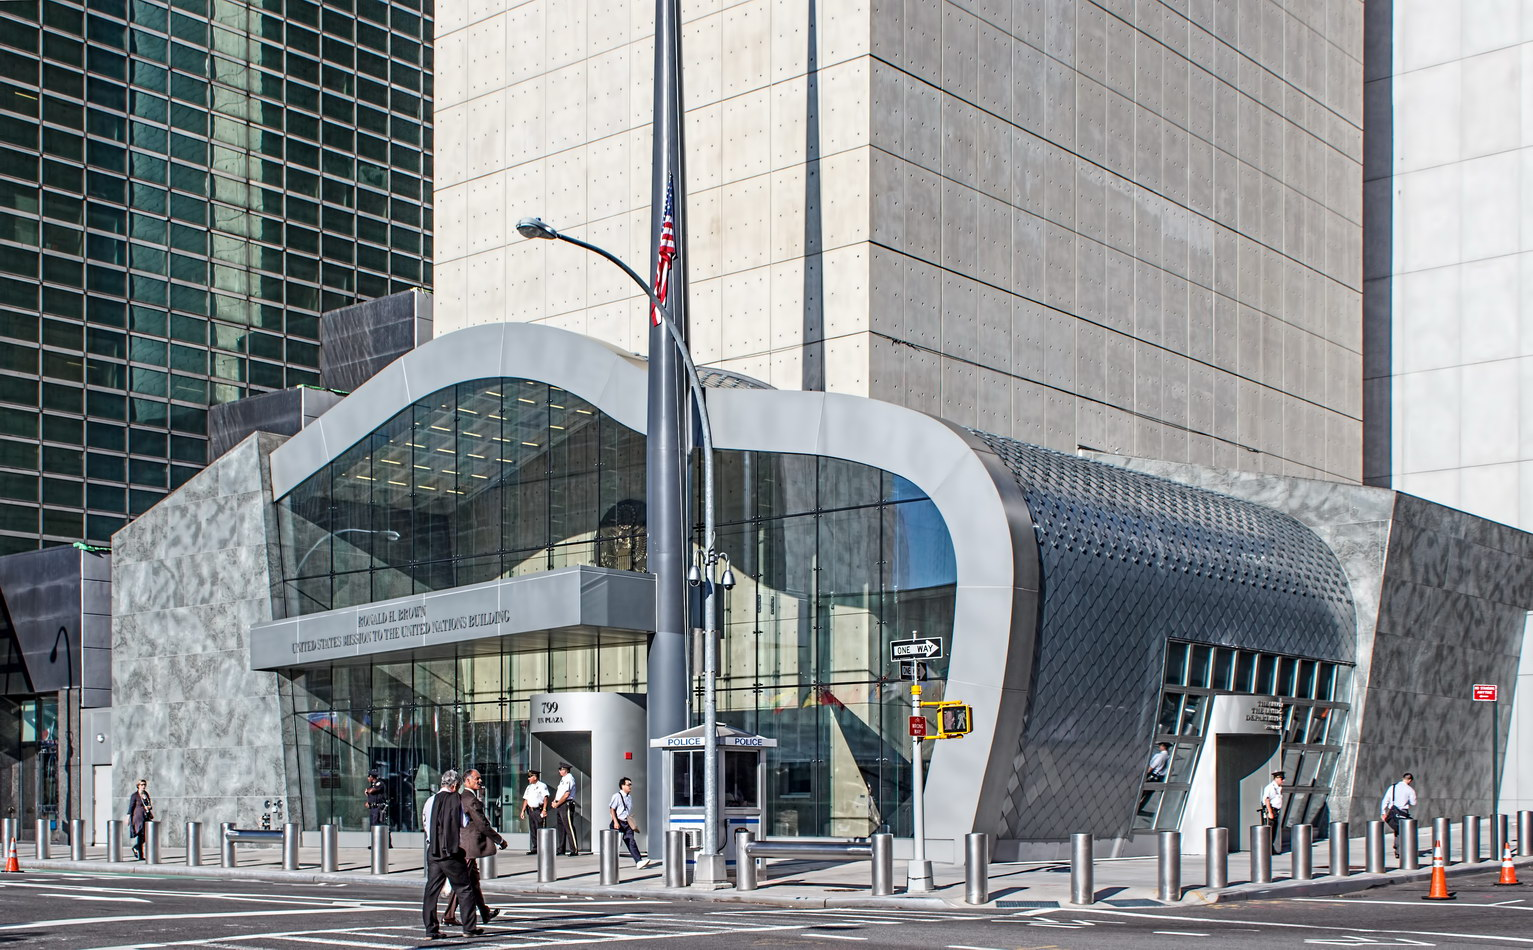 The public entrance is on UN Plaza (First Avenue); staff enter on E 45th Street.